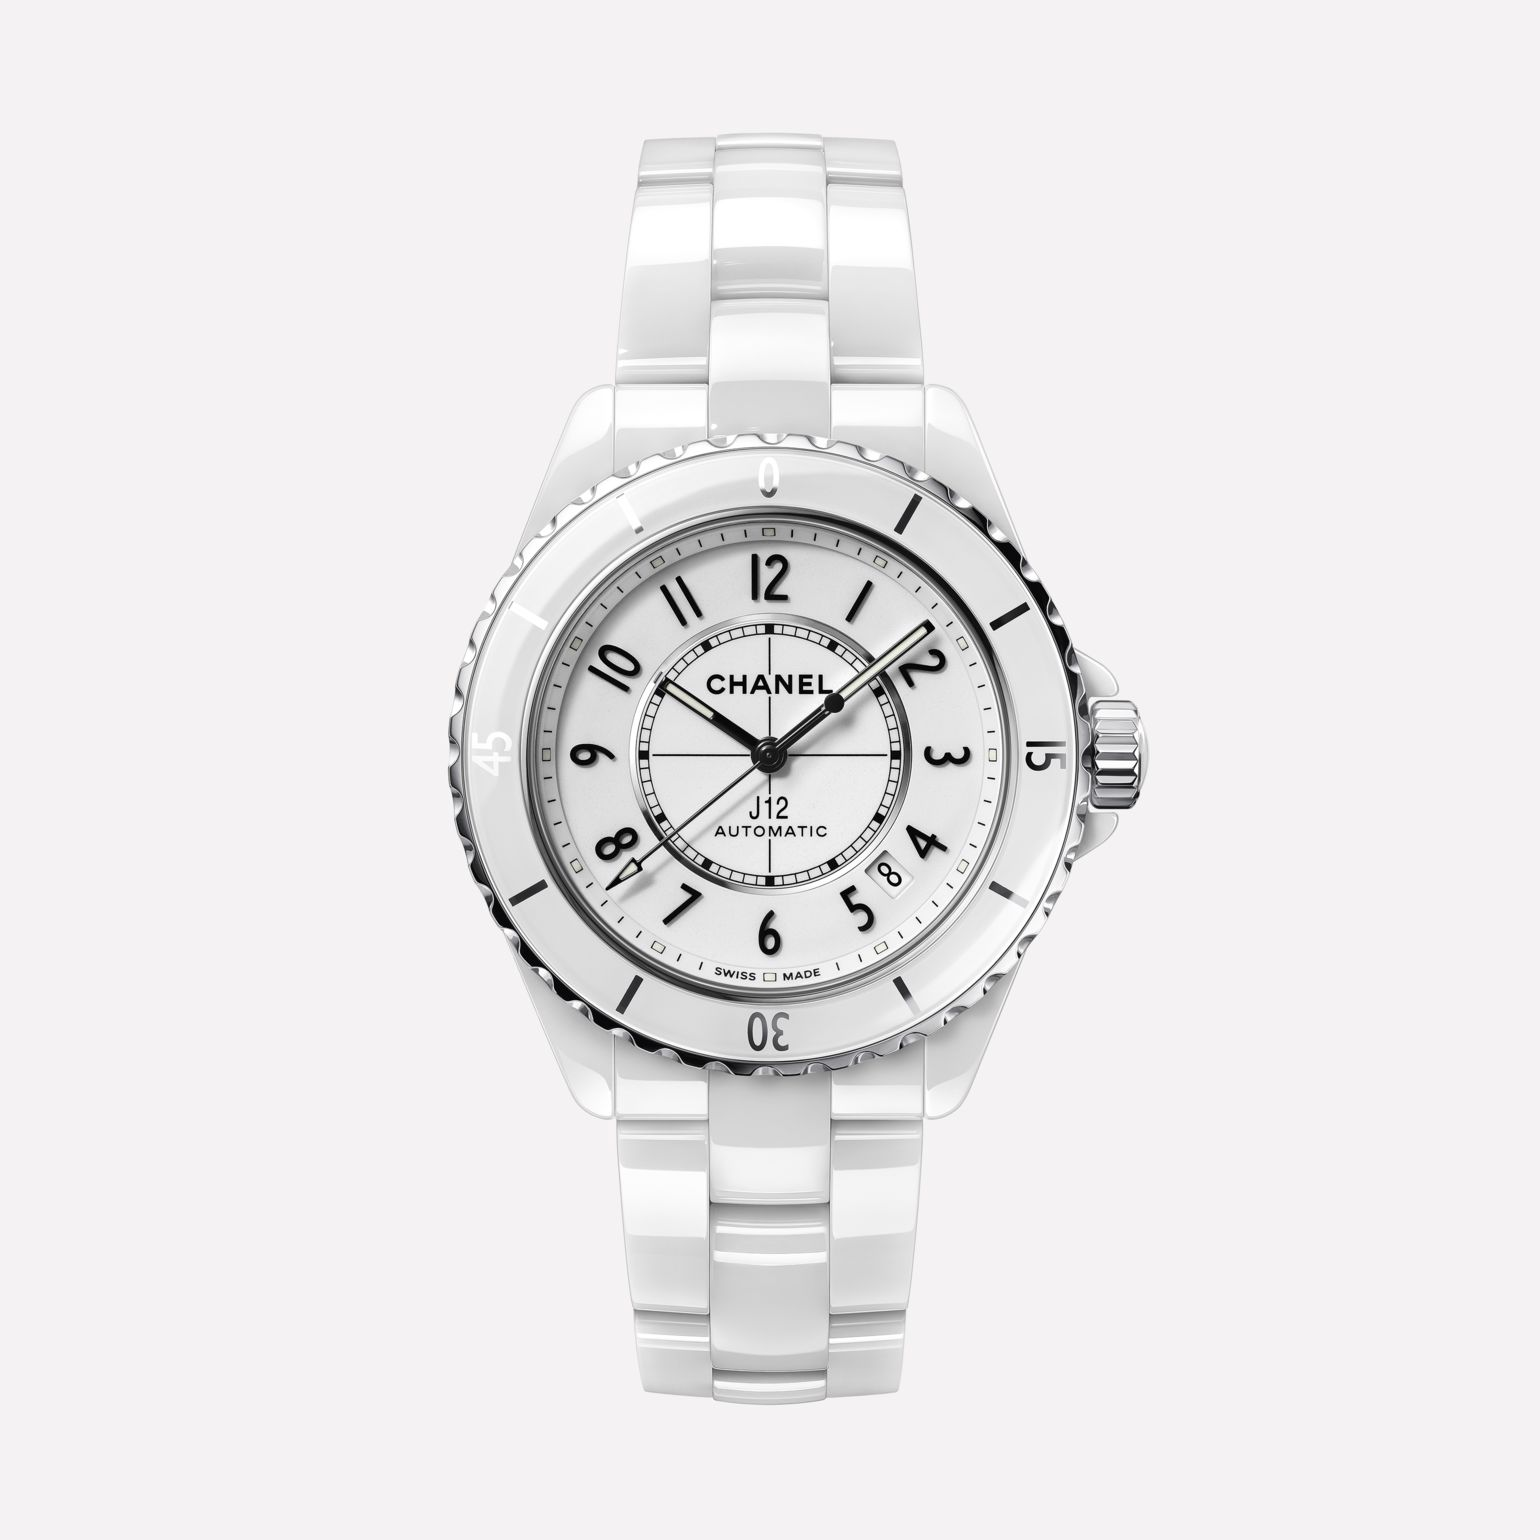 J12 Watch Caliber 12.1, 38 mm White highly resistant ceramic and steel